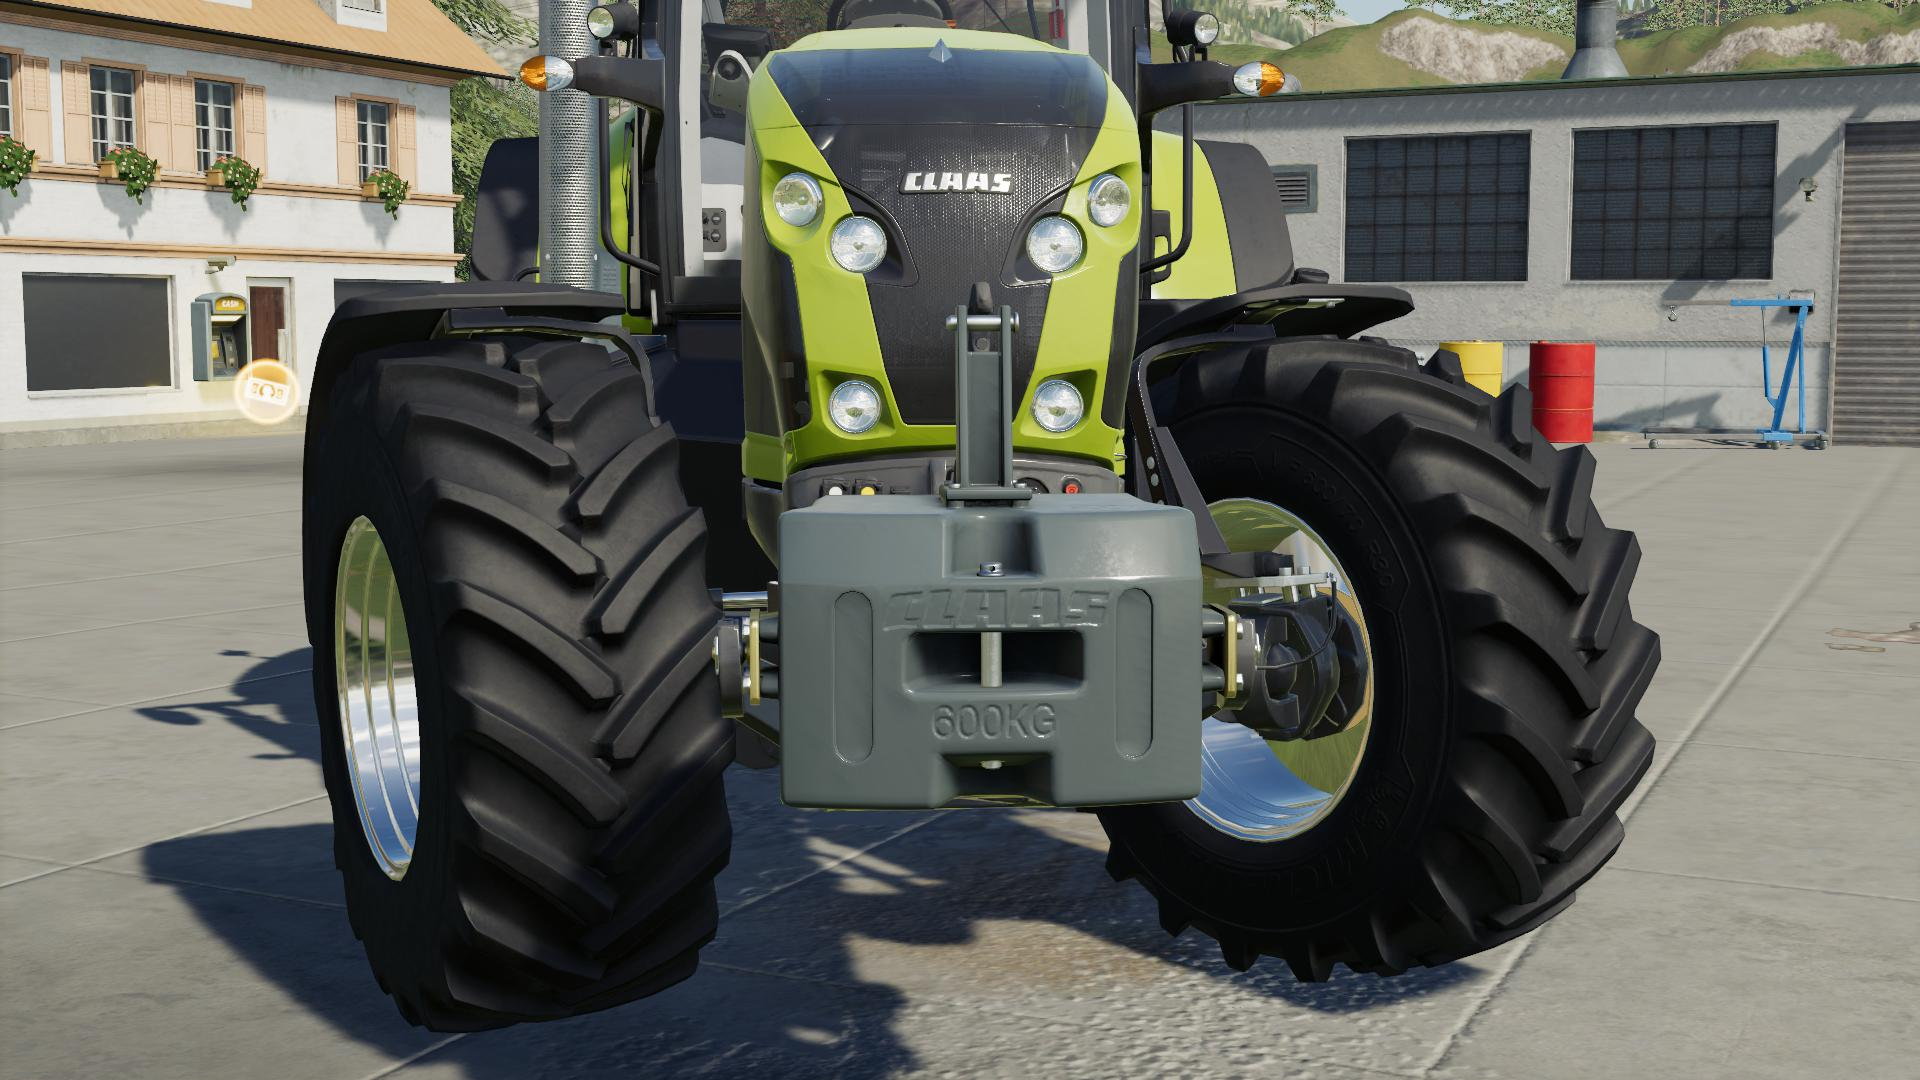 WEIGHTS CLAAS V1.0